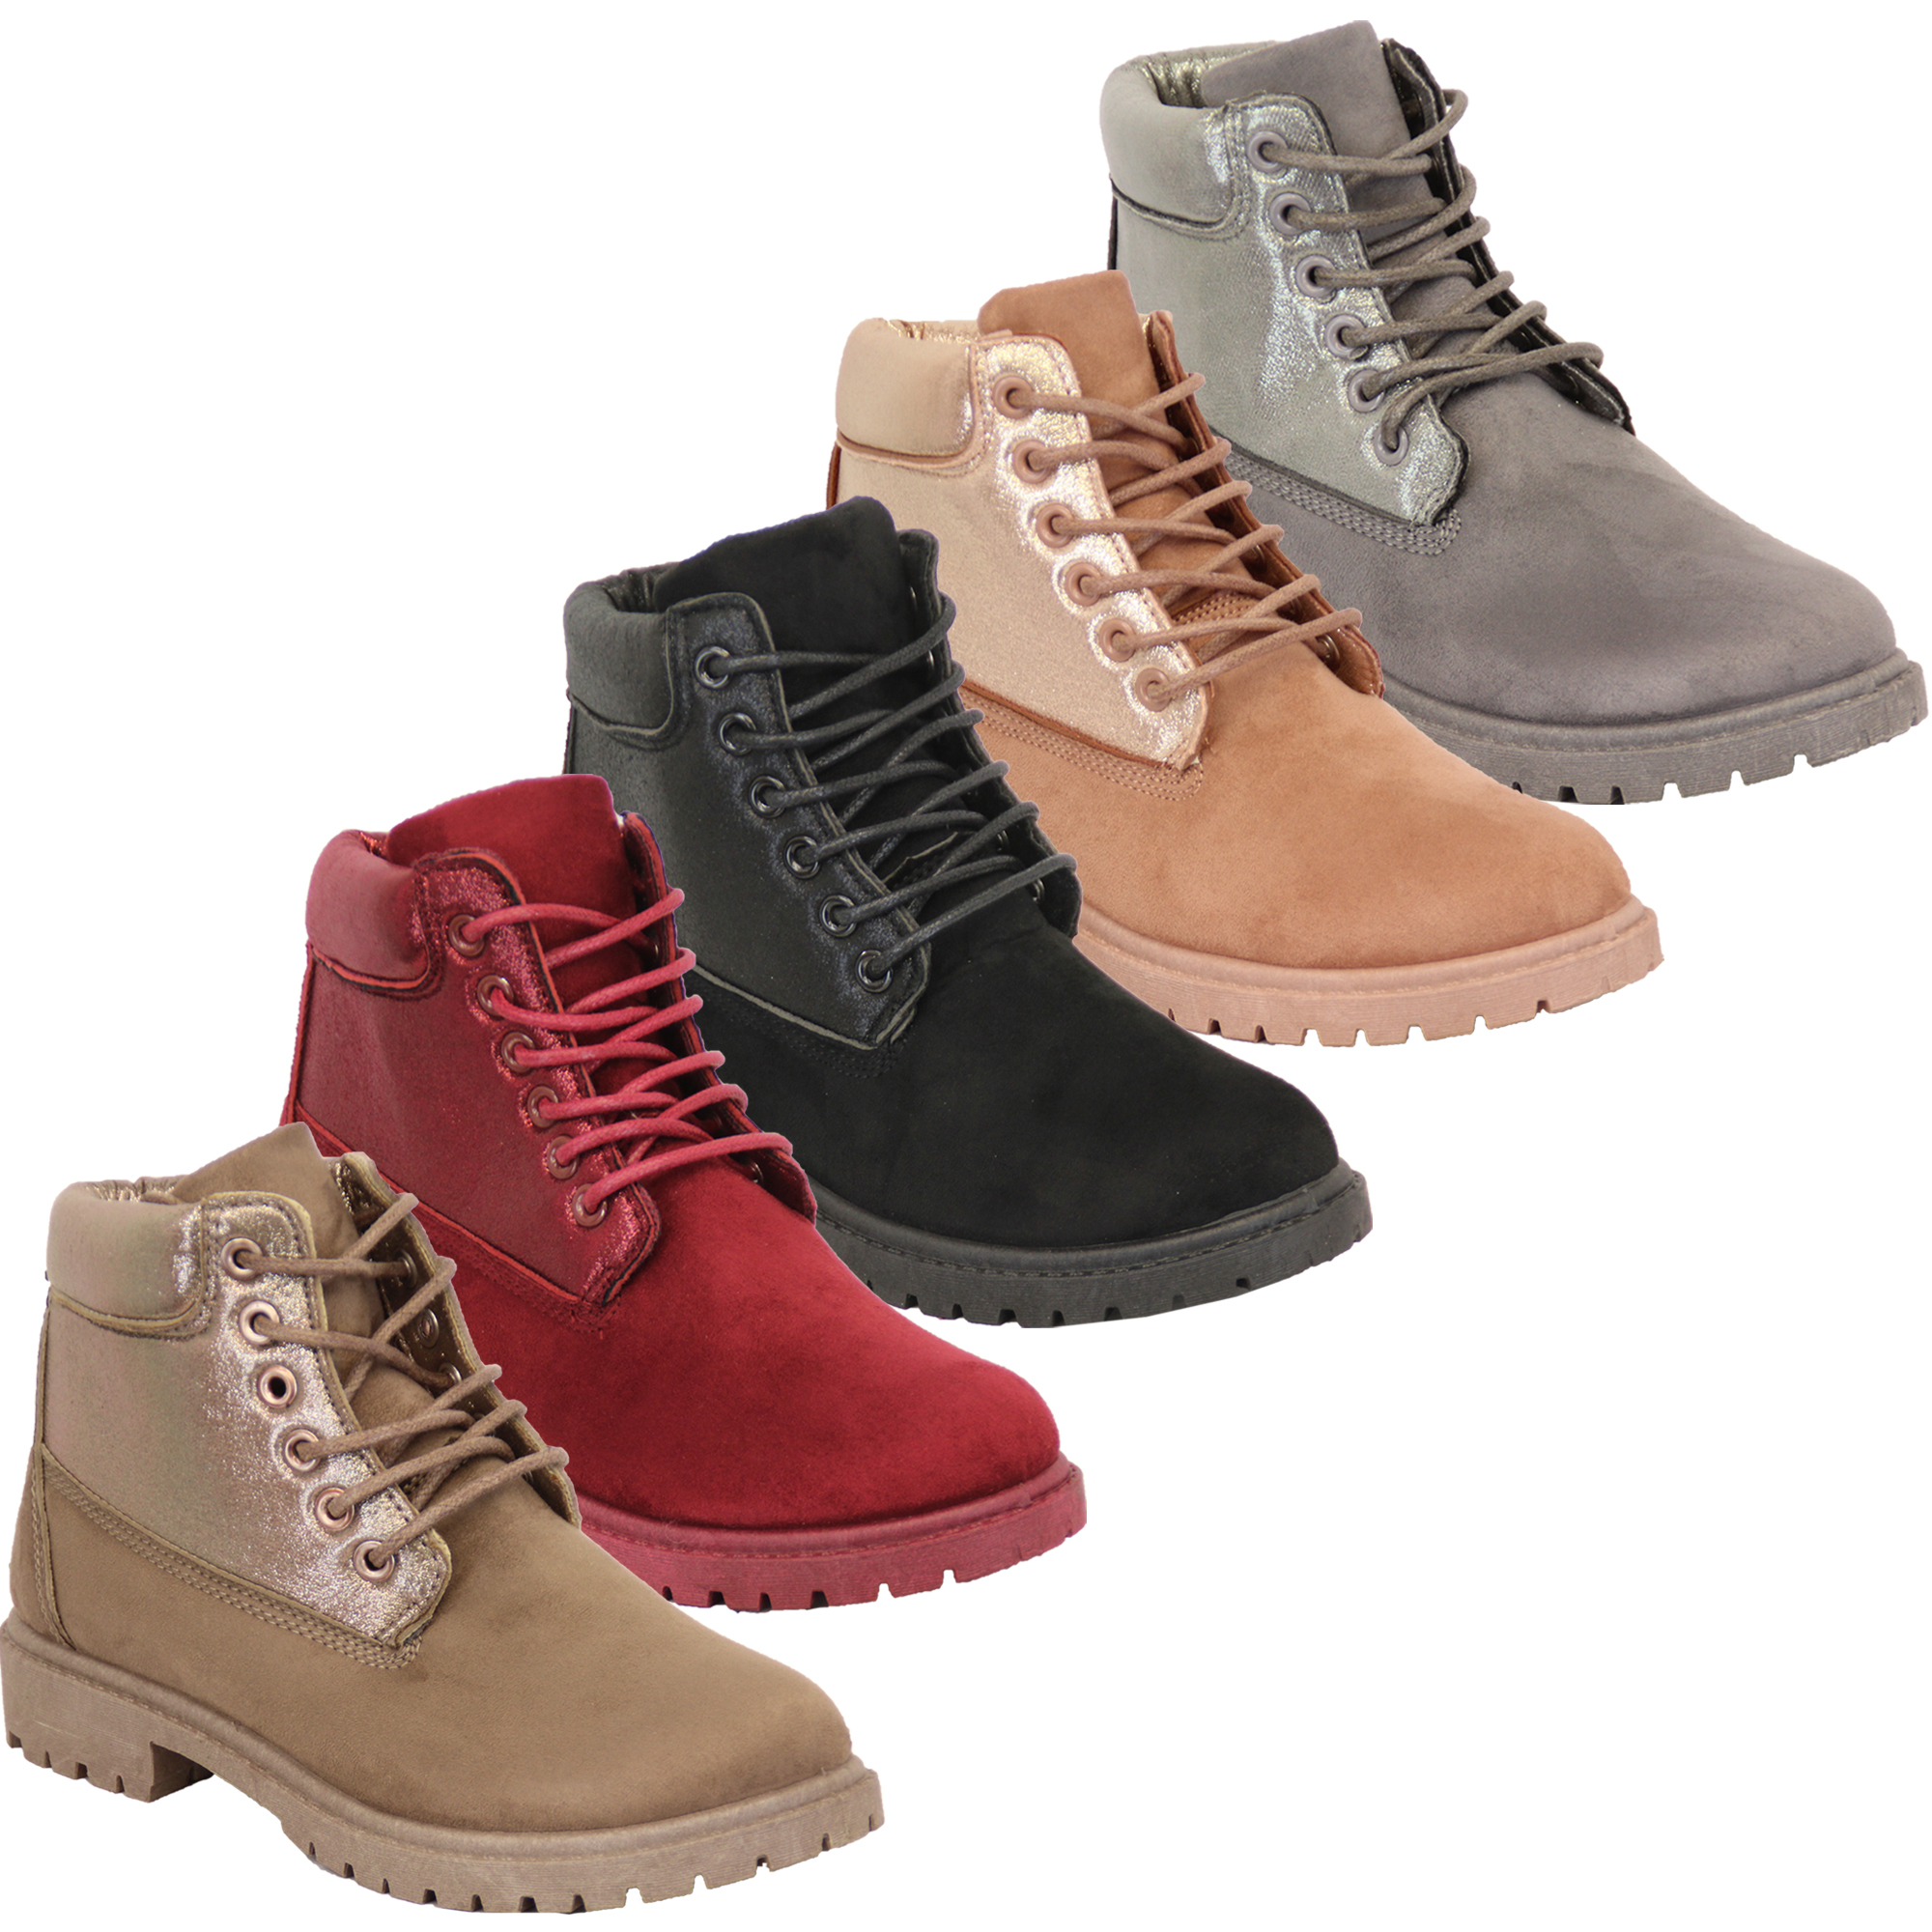 Details about Ladies Boots Womens Shoes Suede Look High Ankle Lace Up Casual Winter Fashion